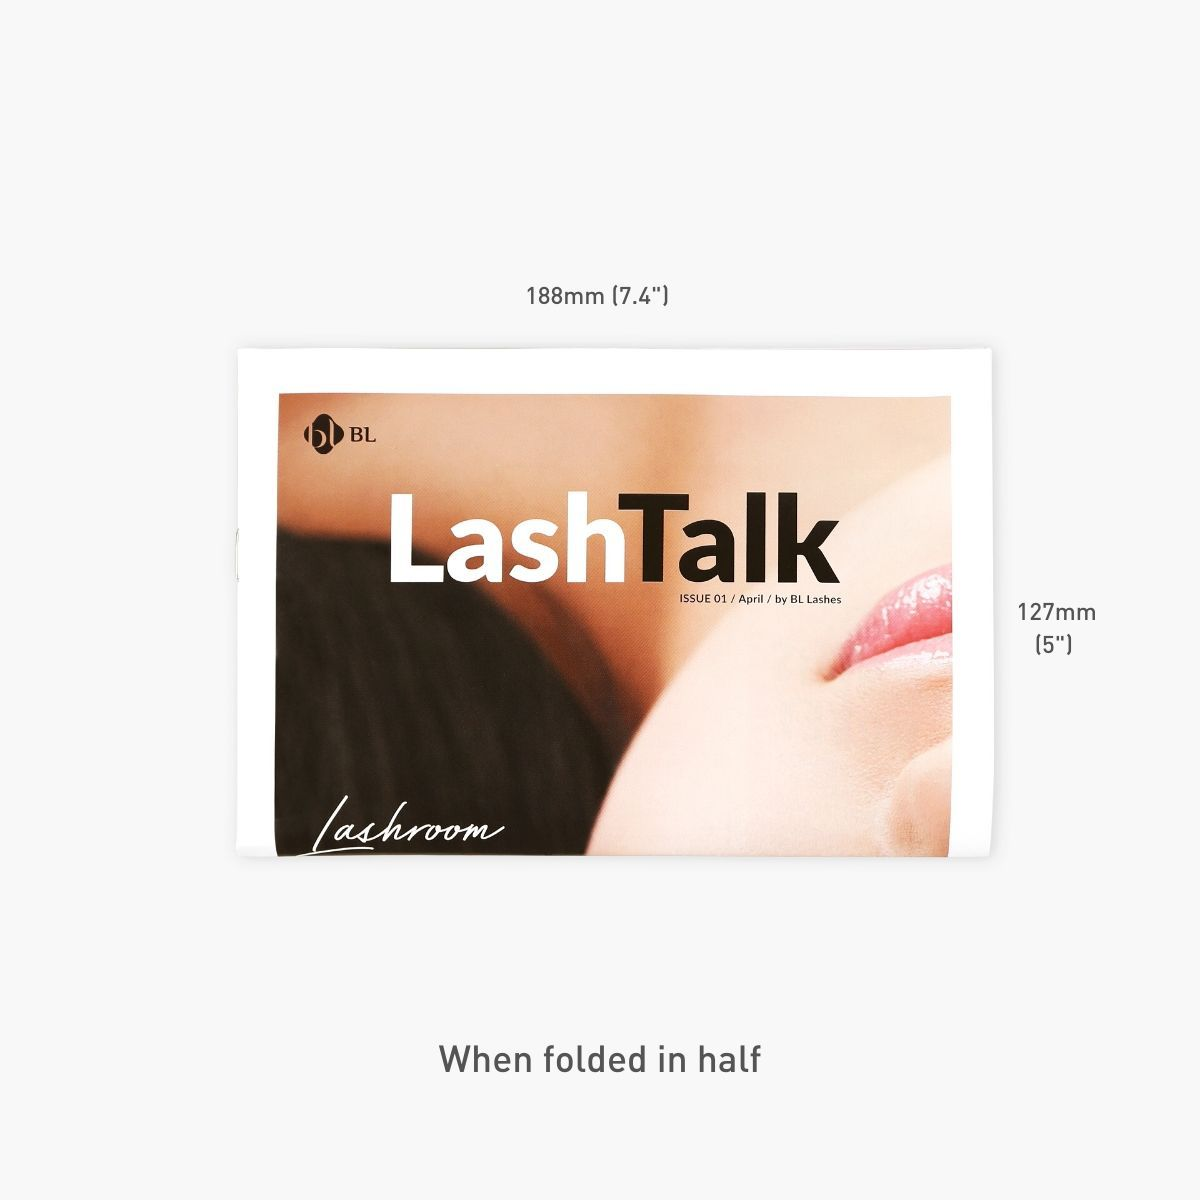 [Magazine] LashTalk (Issue 01, April 2020)